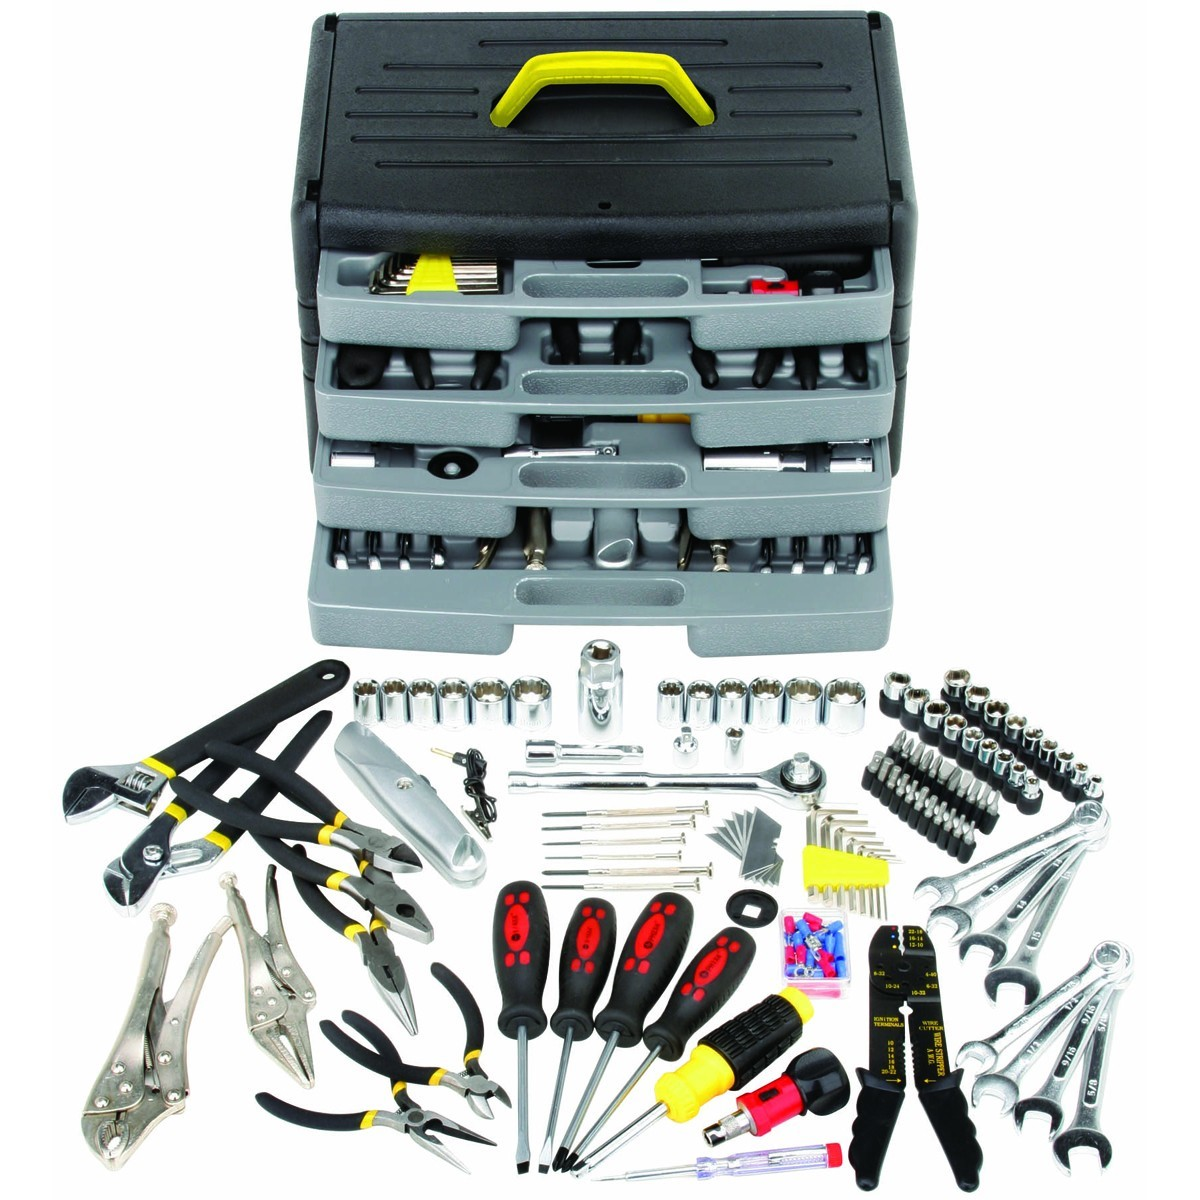 PITTSBURGH AUTOMOTIVE Miscellaneous Tool 105PC